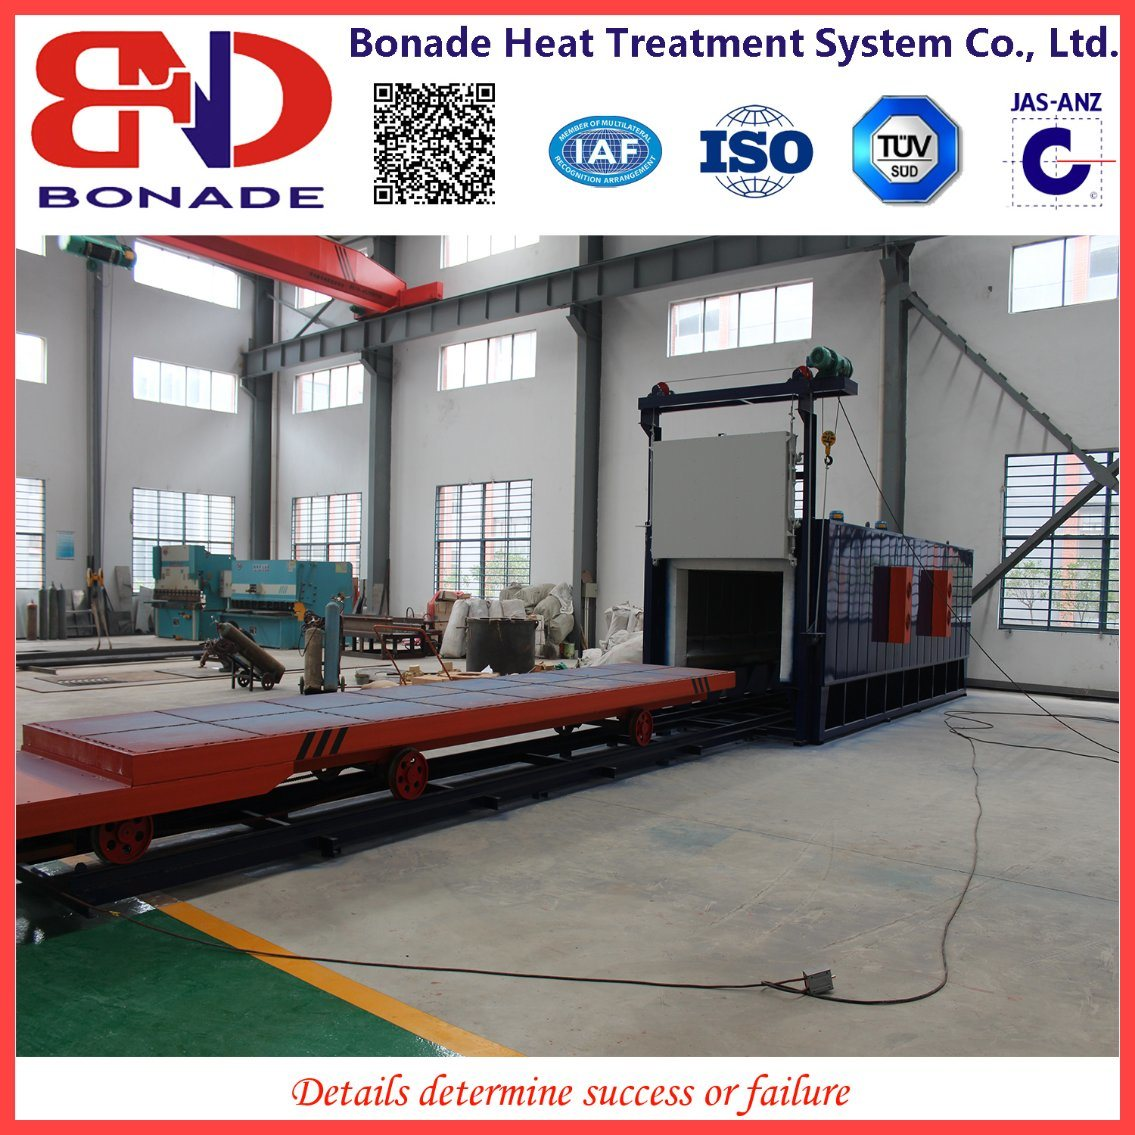 900kw Air Circulation Bogie Hearth Furnaces for Heat Treatment